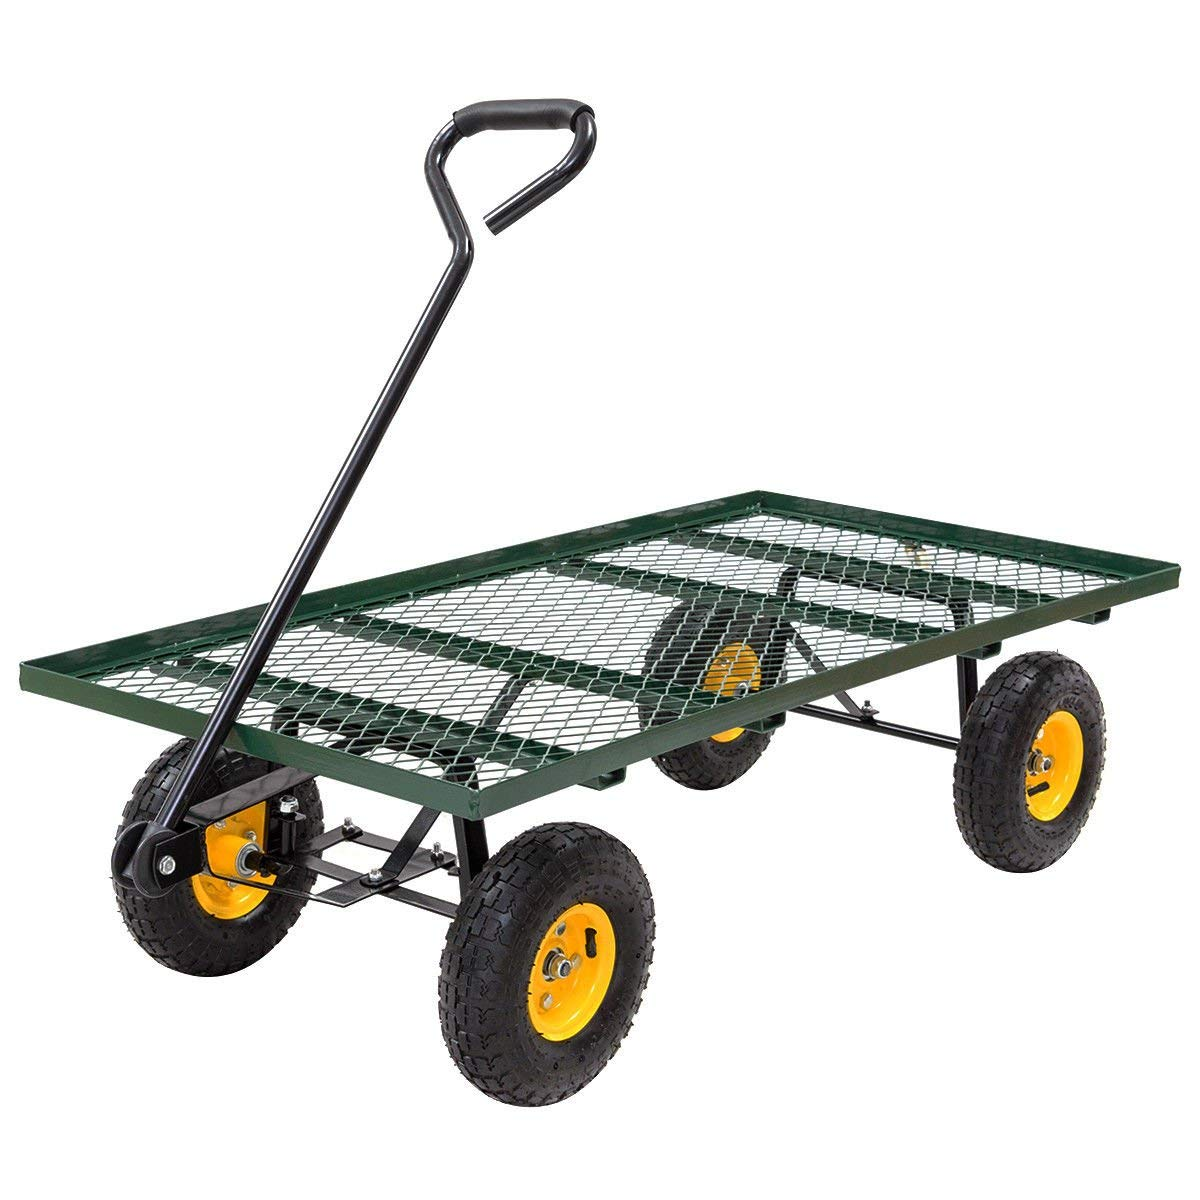 "Globe House Products GHP 800-Lbs Capacity Steel Yard Garden Trolley Cart with 10"" Tires & 33.1"" Draw Bar"